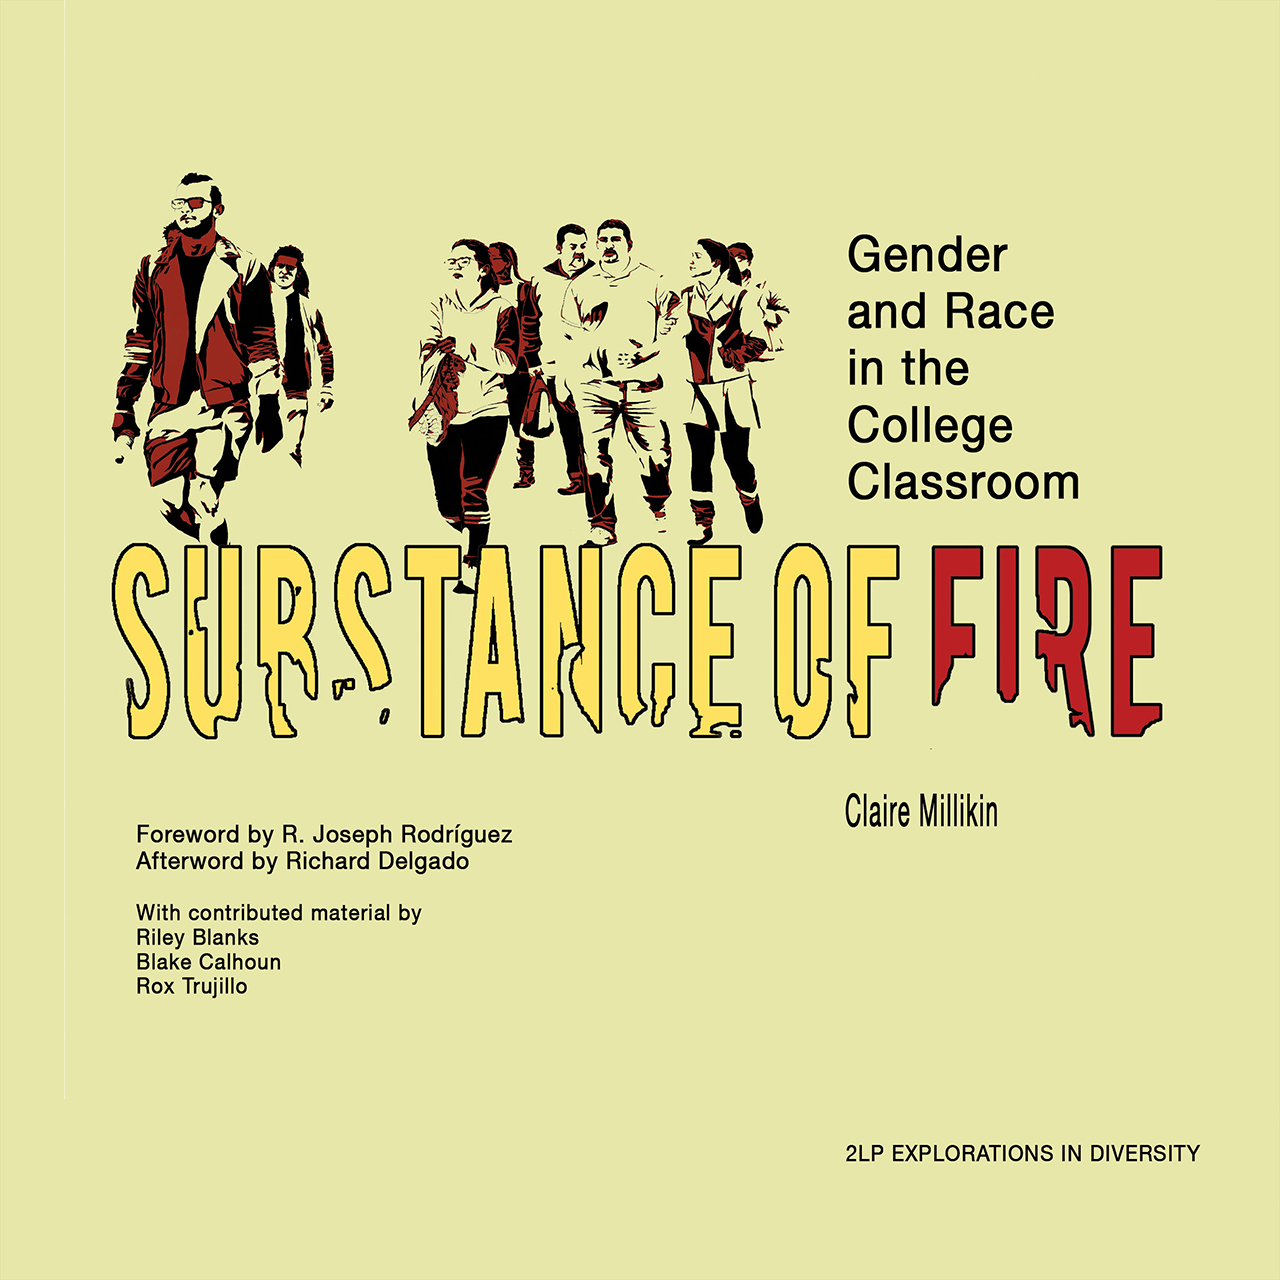 Substance of Fire: Gender and Race in the College Classroom